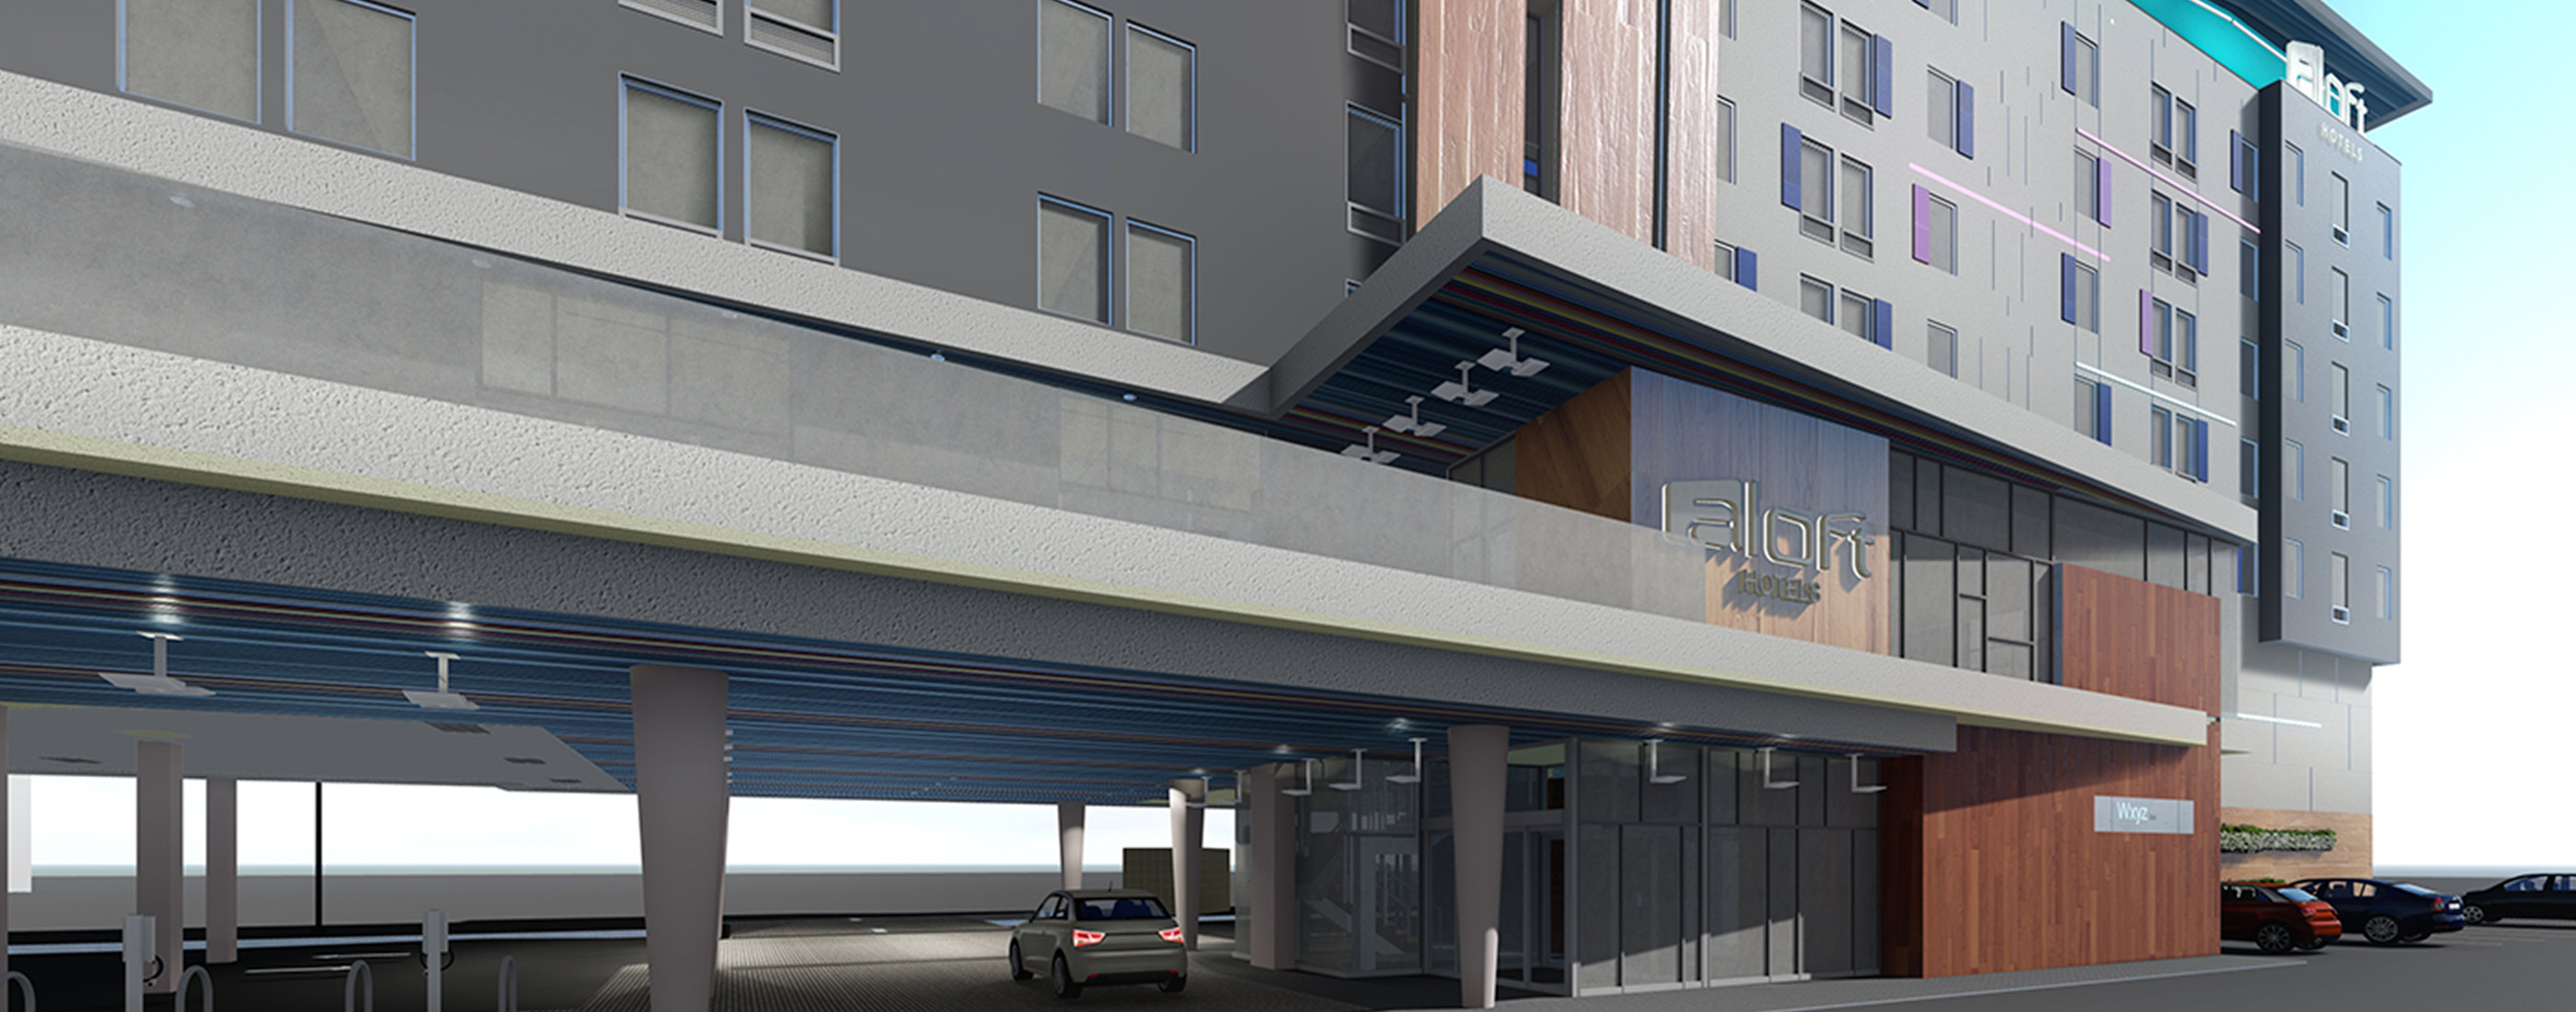 Entry into the LEED designed Aloft Hotel.